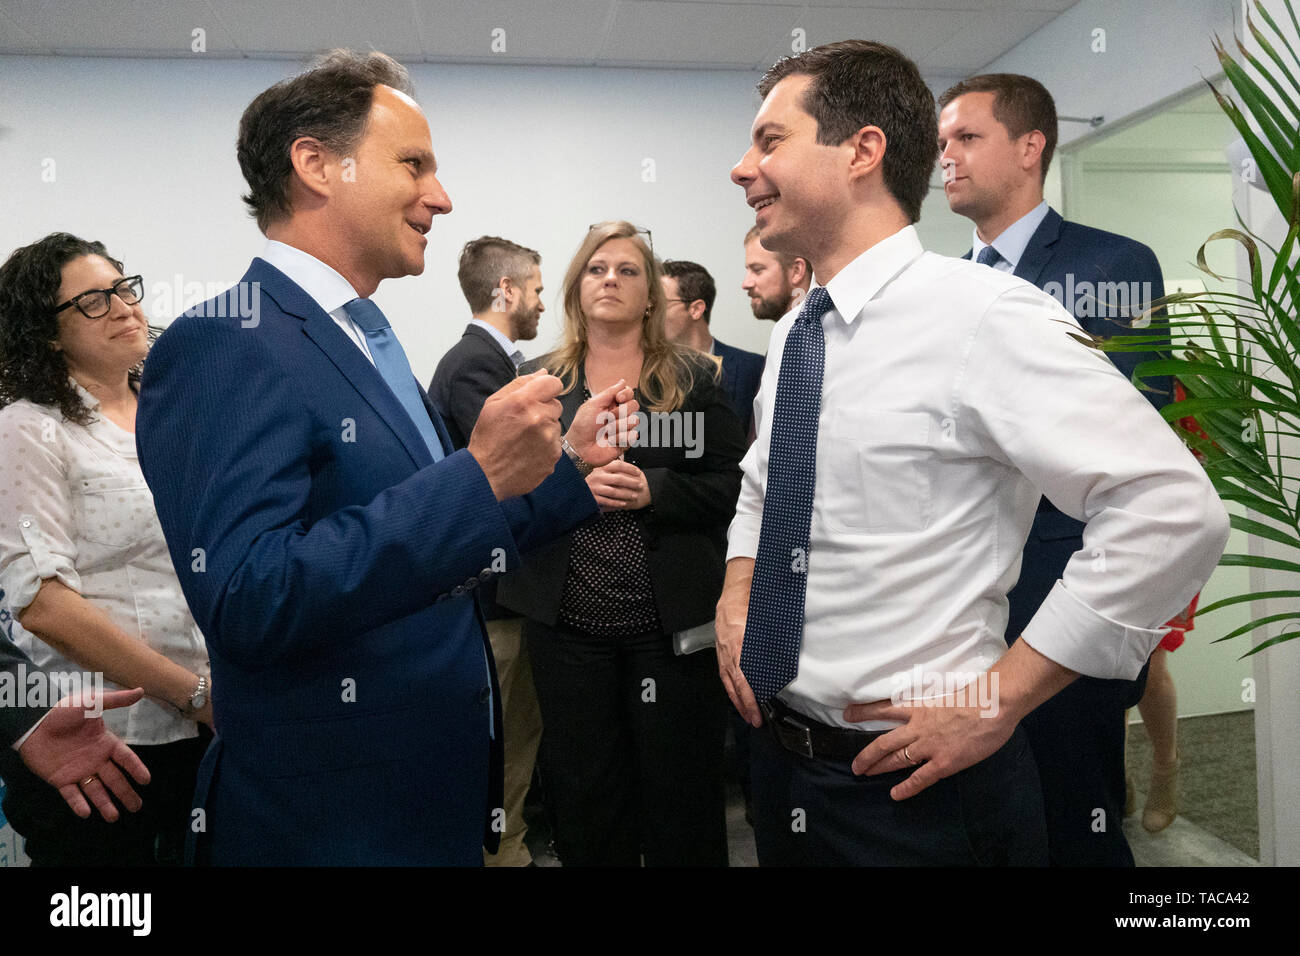 Rabbi Jonah Pesner, director of the Religious Action Center of Reform Judaism, meets with Mayor Pete Buttigieg as he enters a discussion with leaders of the Jewish community at a communal parlor meeting at the offices of Bluelight Strategies in Washington, DC, U.S. on May 23, 2019. Credit: Stefani Reynolds/CNP | usage worldwide - Stock Image